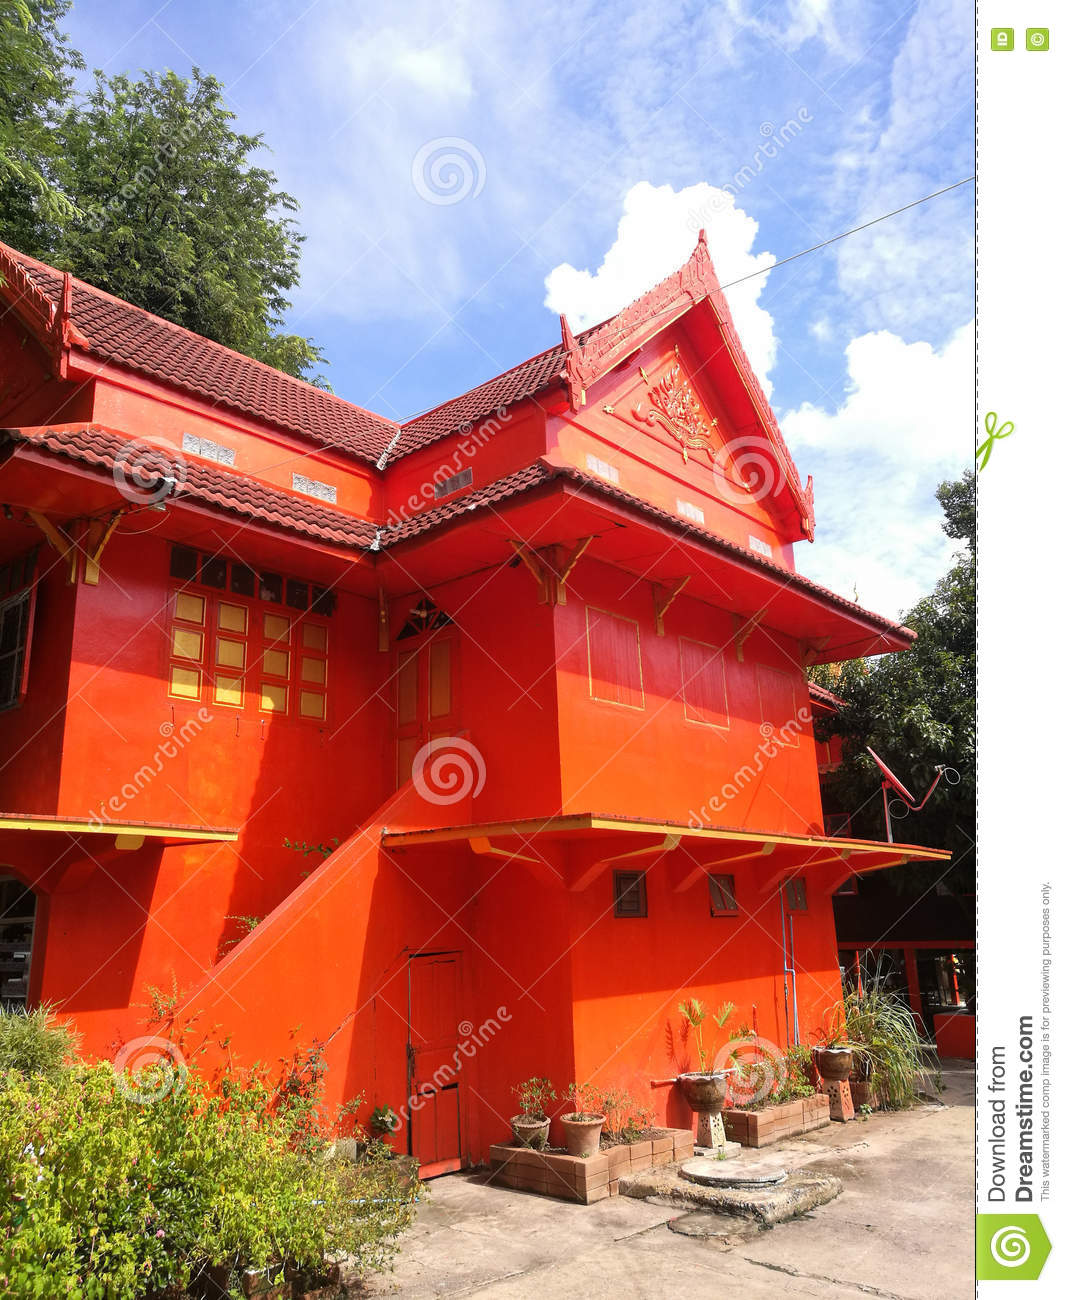 buddhist singles in red house The buddhist path to simplicity: spiritual practice in everyday life - kindle edition by christina feldman download it once and read it on your kindle device, pc, phones or tablets.